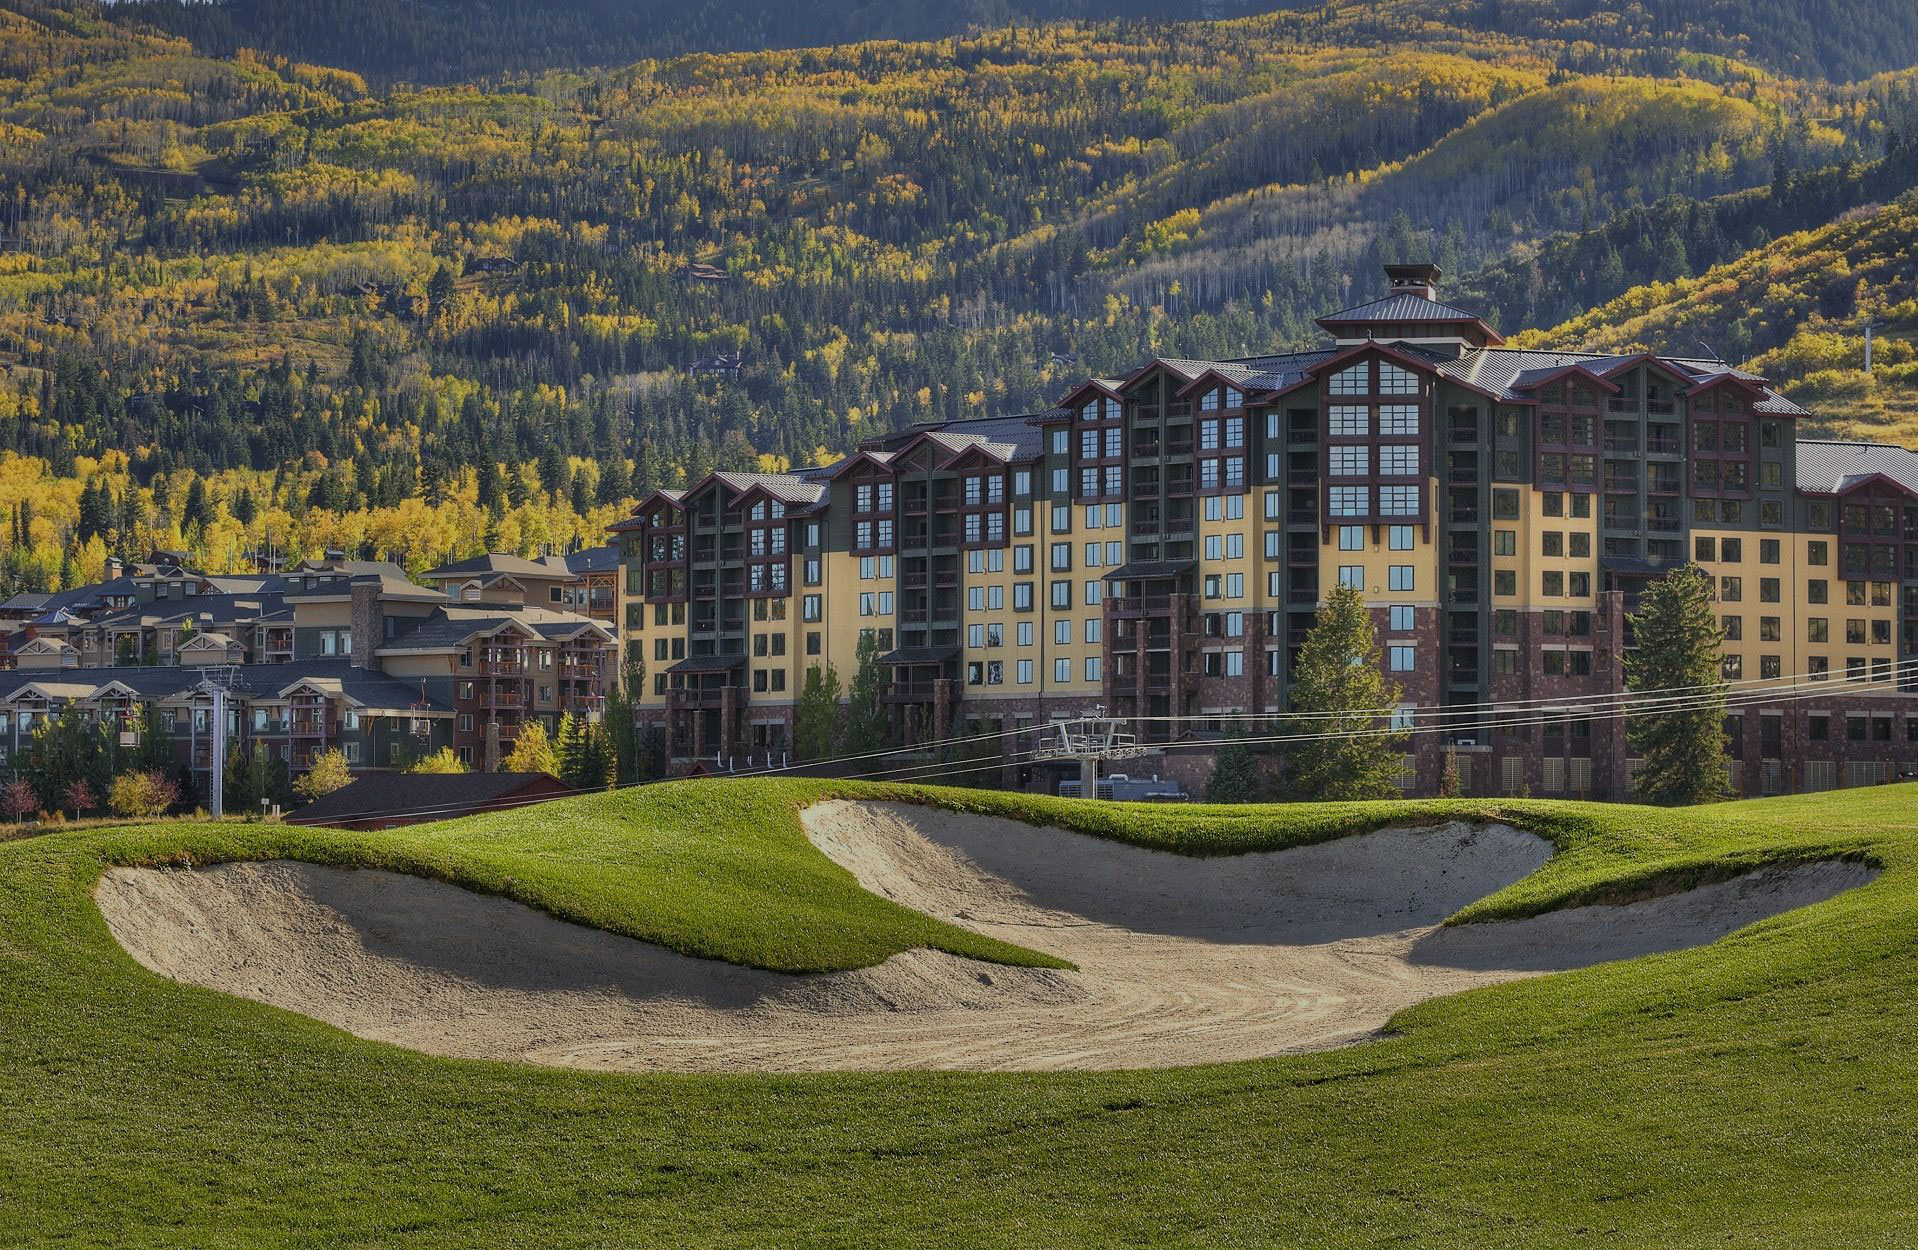 Exterior View of Gold Course and Westgate Park City Building